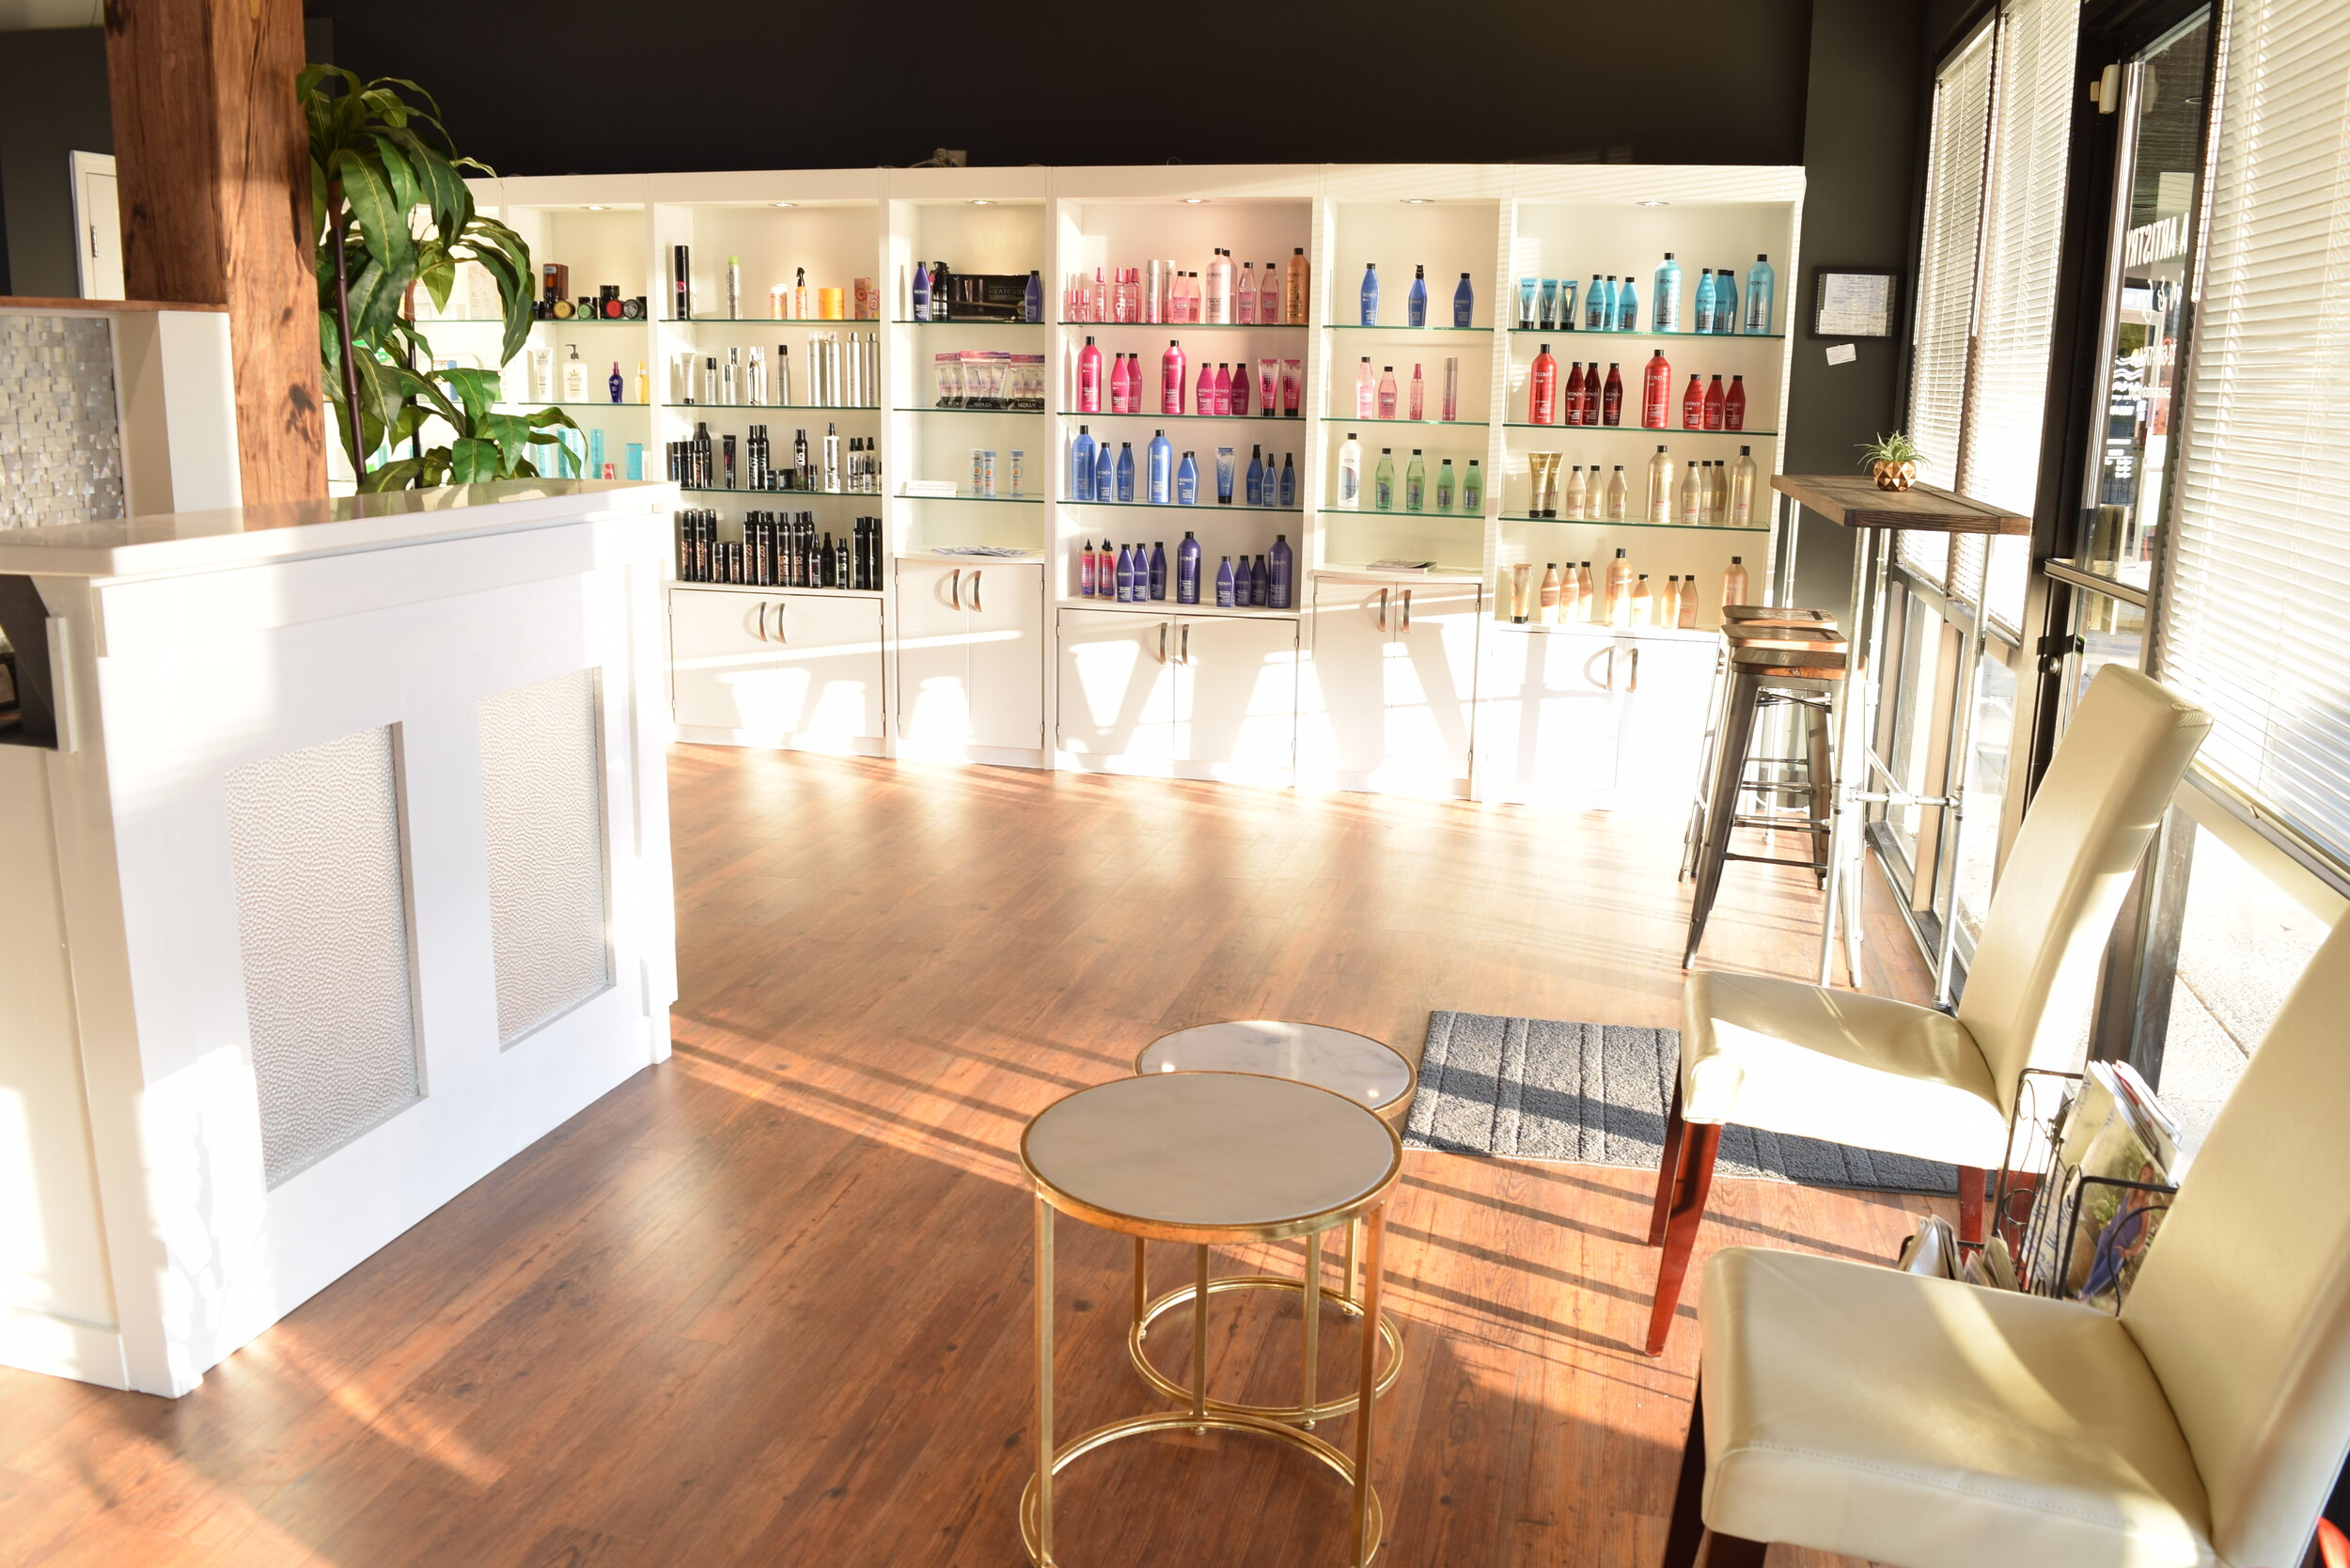 About - Find out about our Salon,mission, and the methods to our madness…